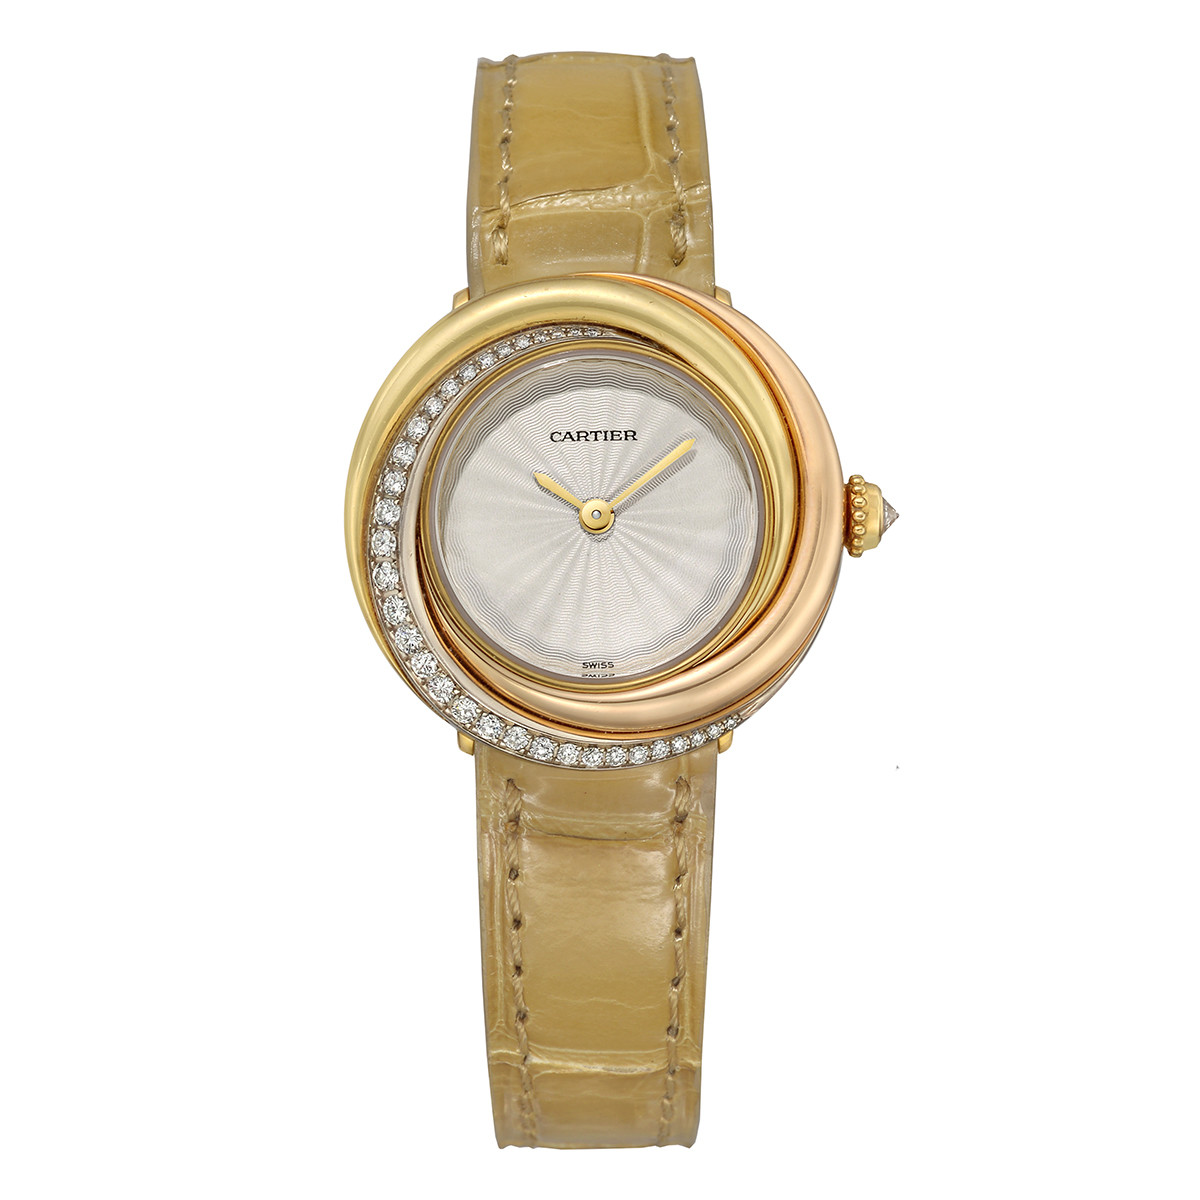 Trinity Tricolored Gold & Diamond Wristwatch